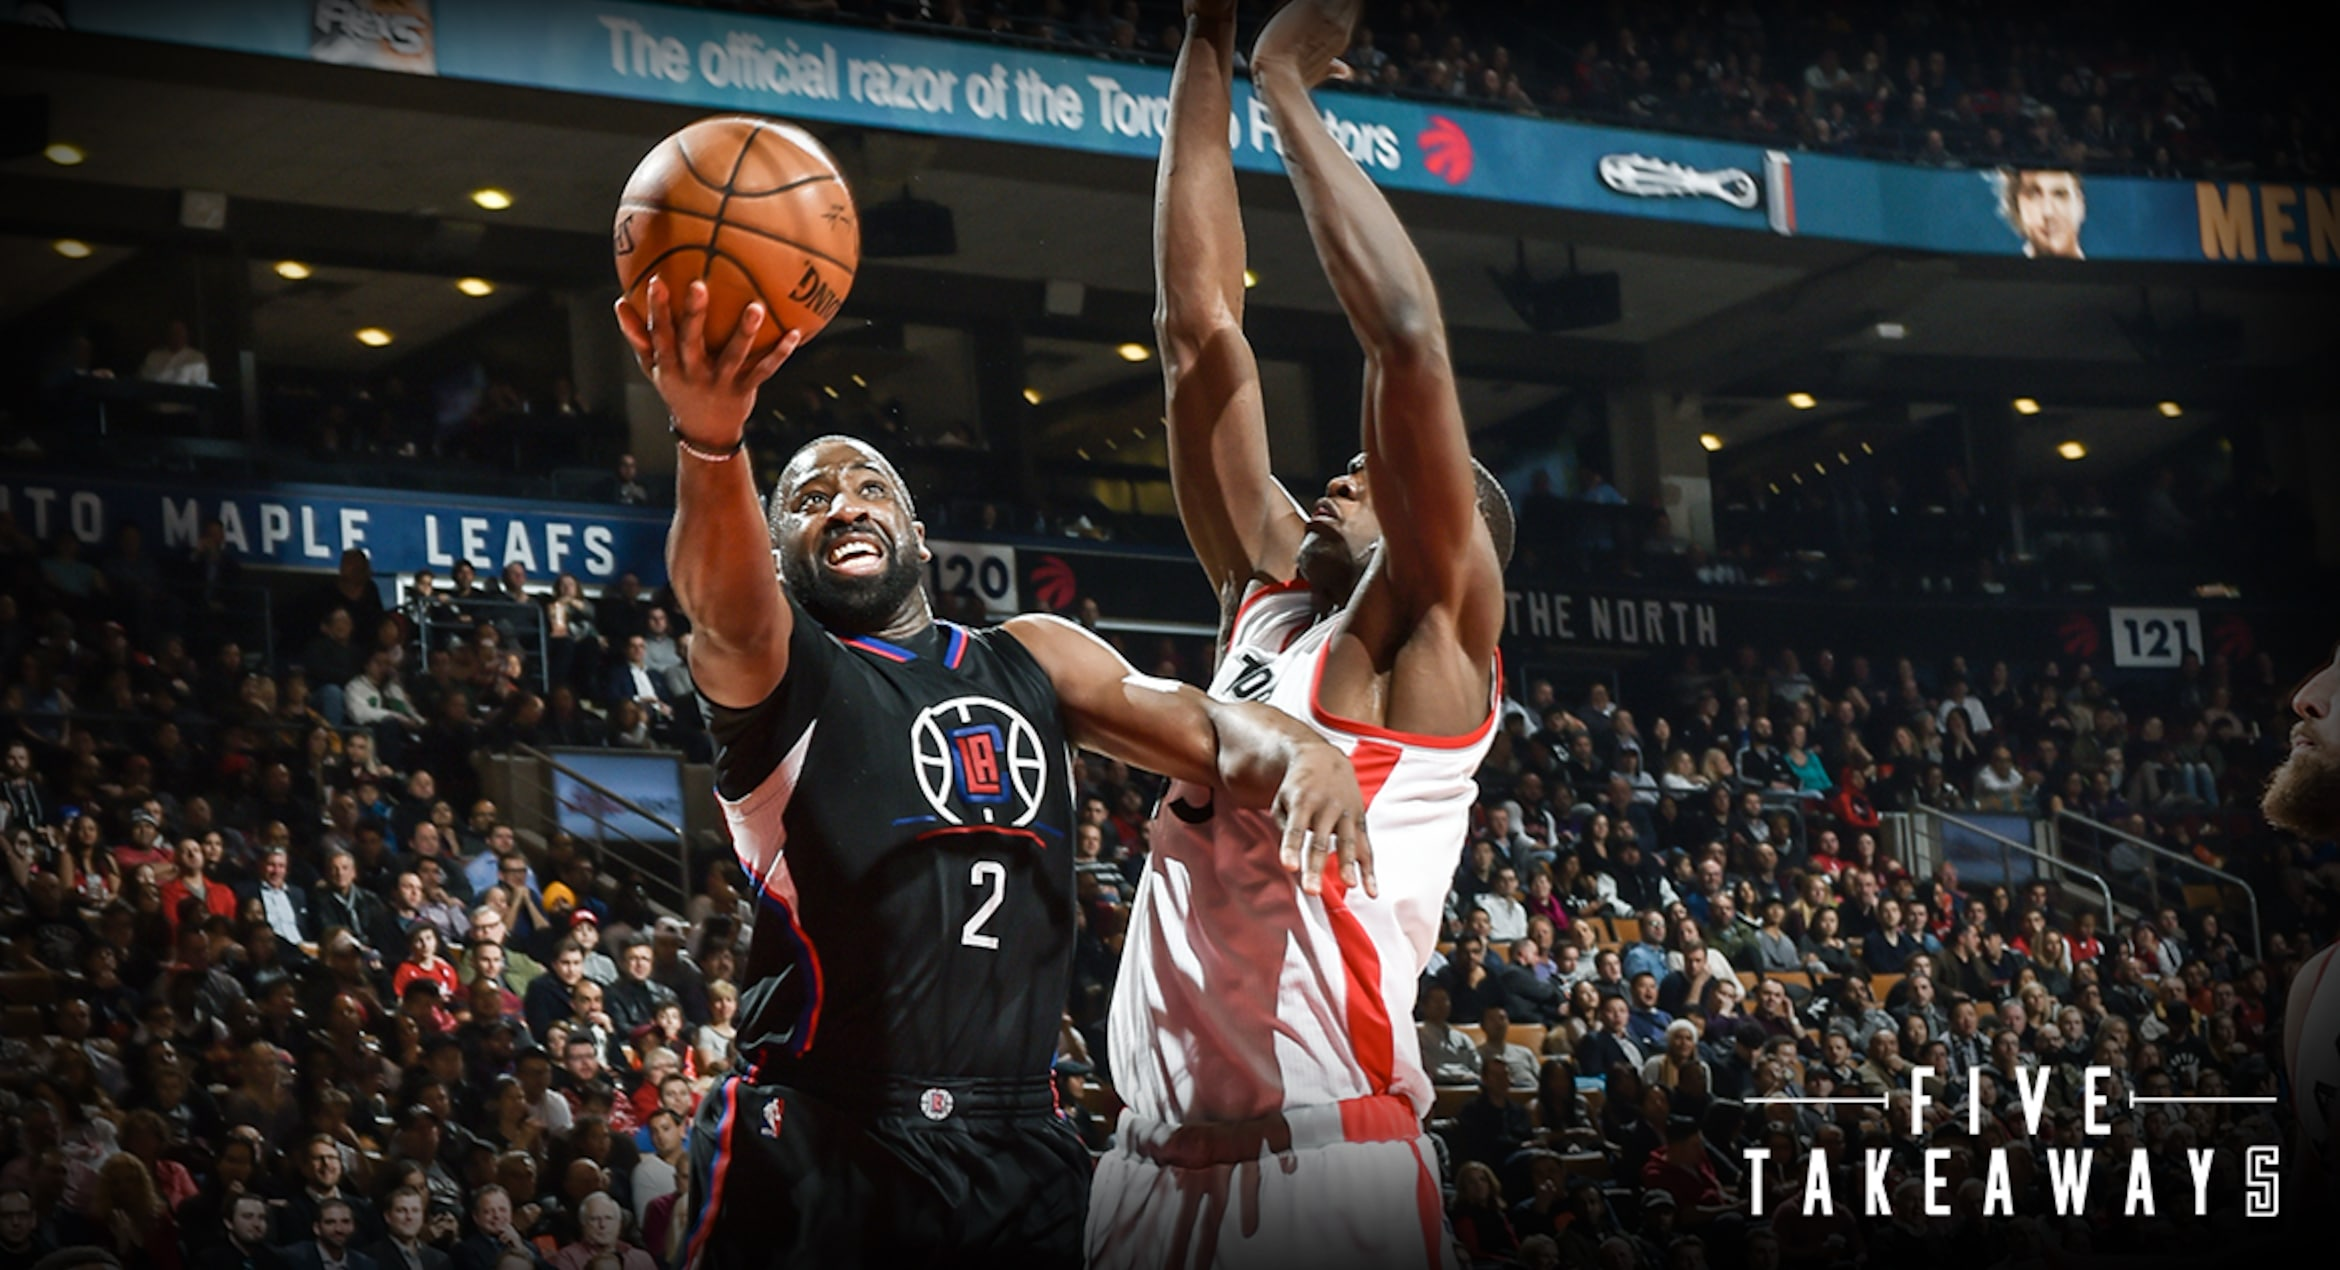 Five Takeaways: Clippers vs Raptors